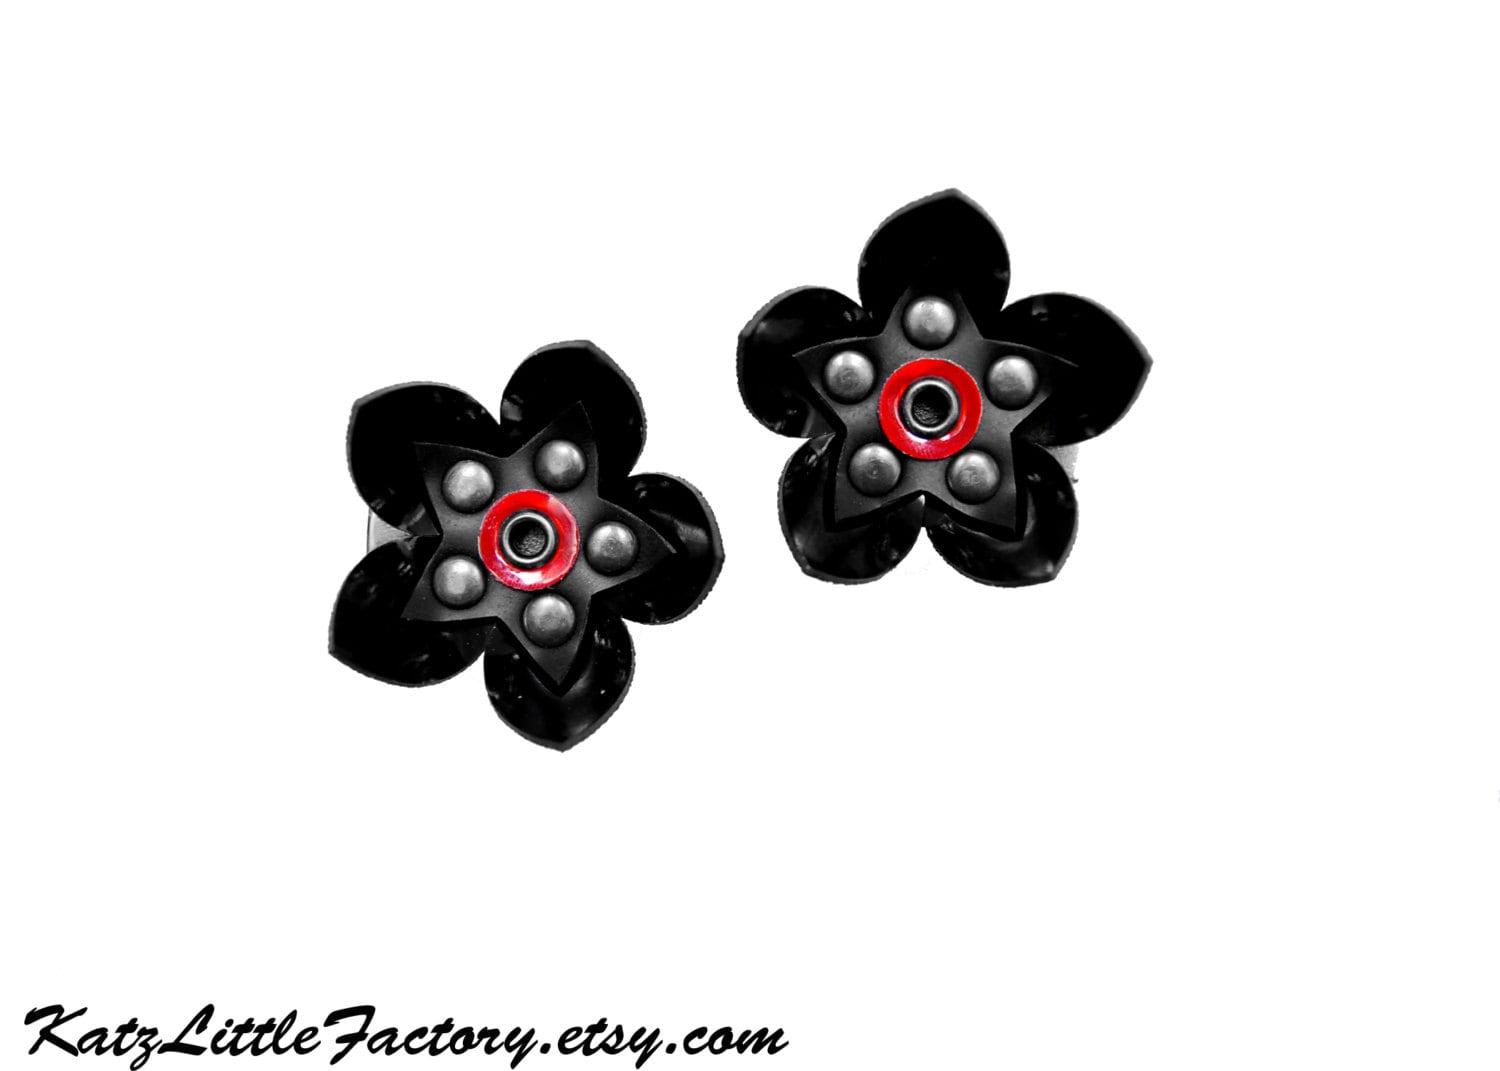 Pair Small Cyber Flower Hair Clips Black With Mirror Red Dot Pvc